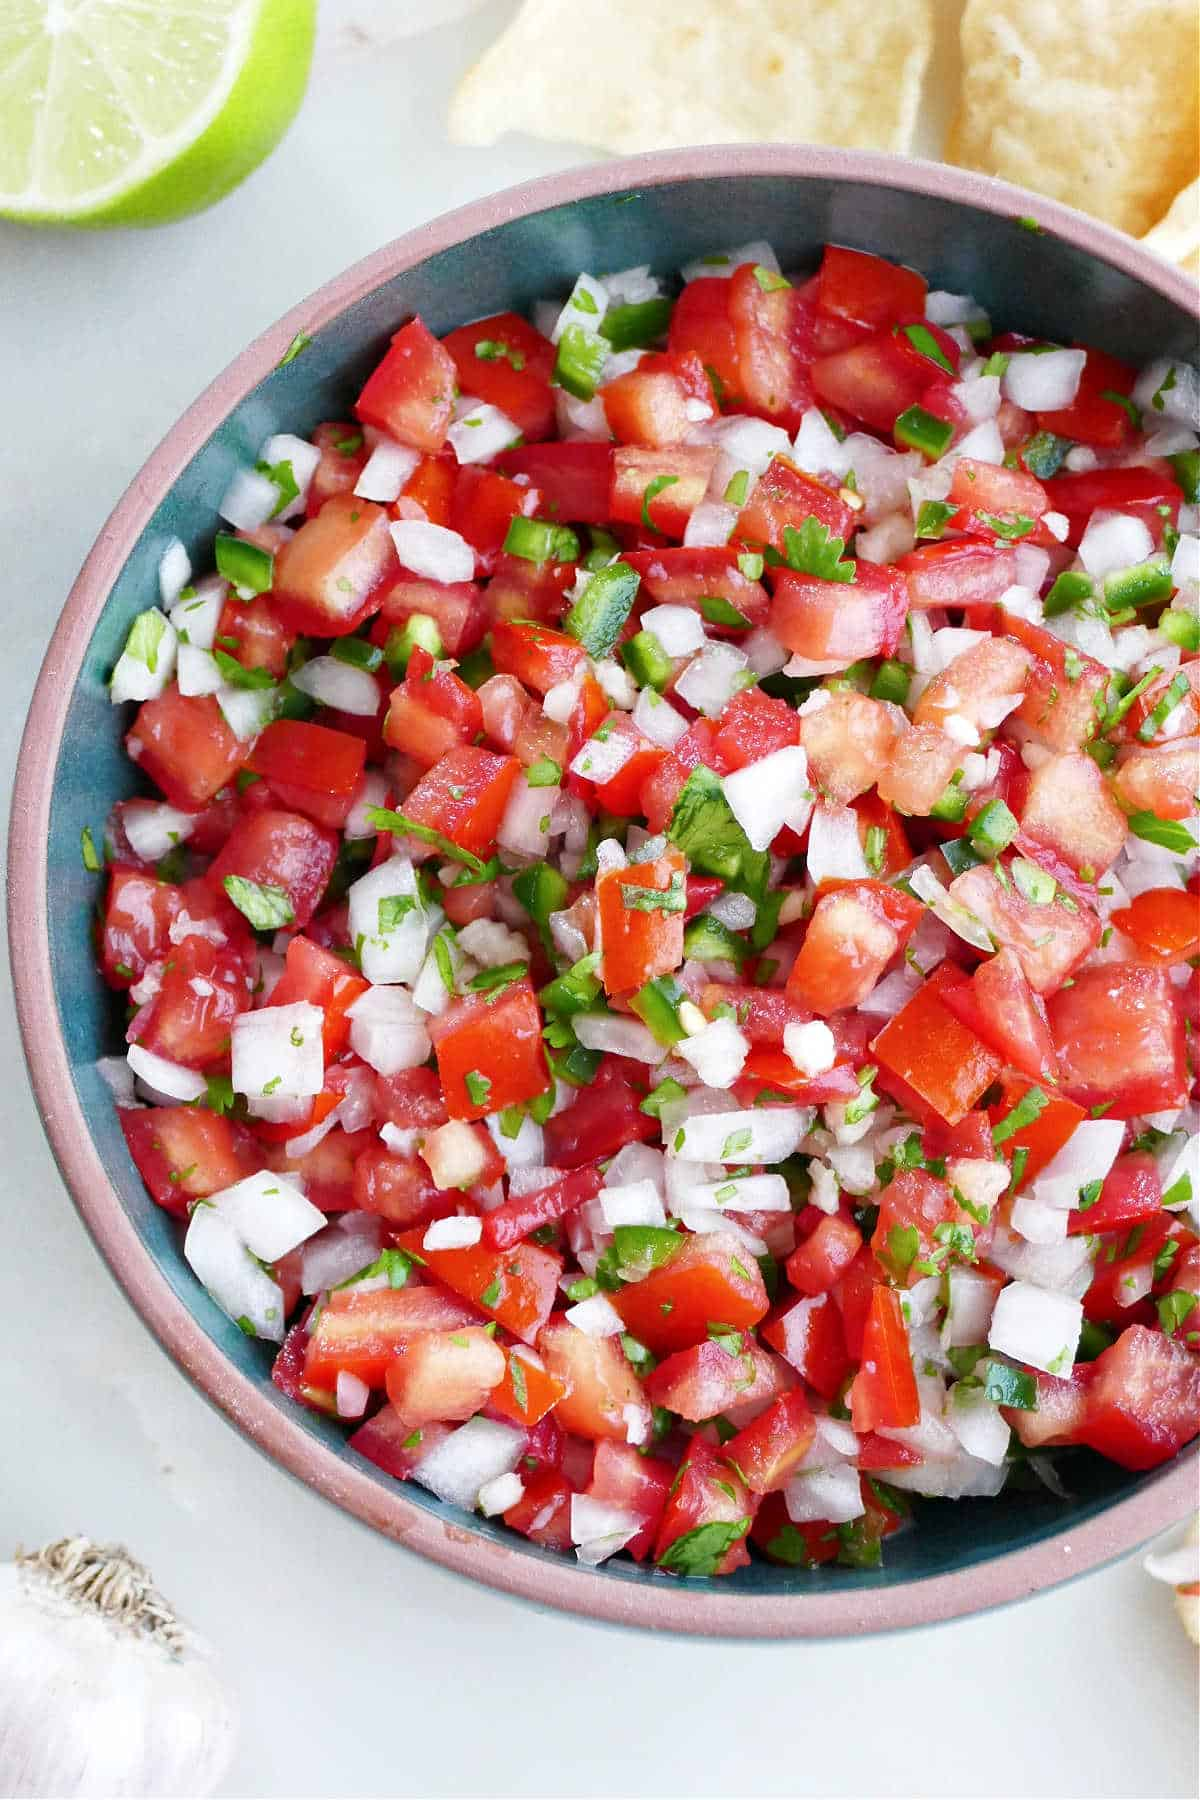 garden salsa with jalapeno, onion, and cilantro in a serving bowl next to chips